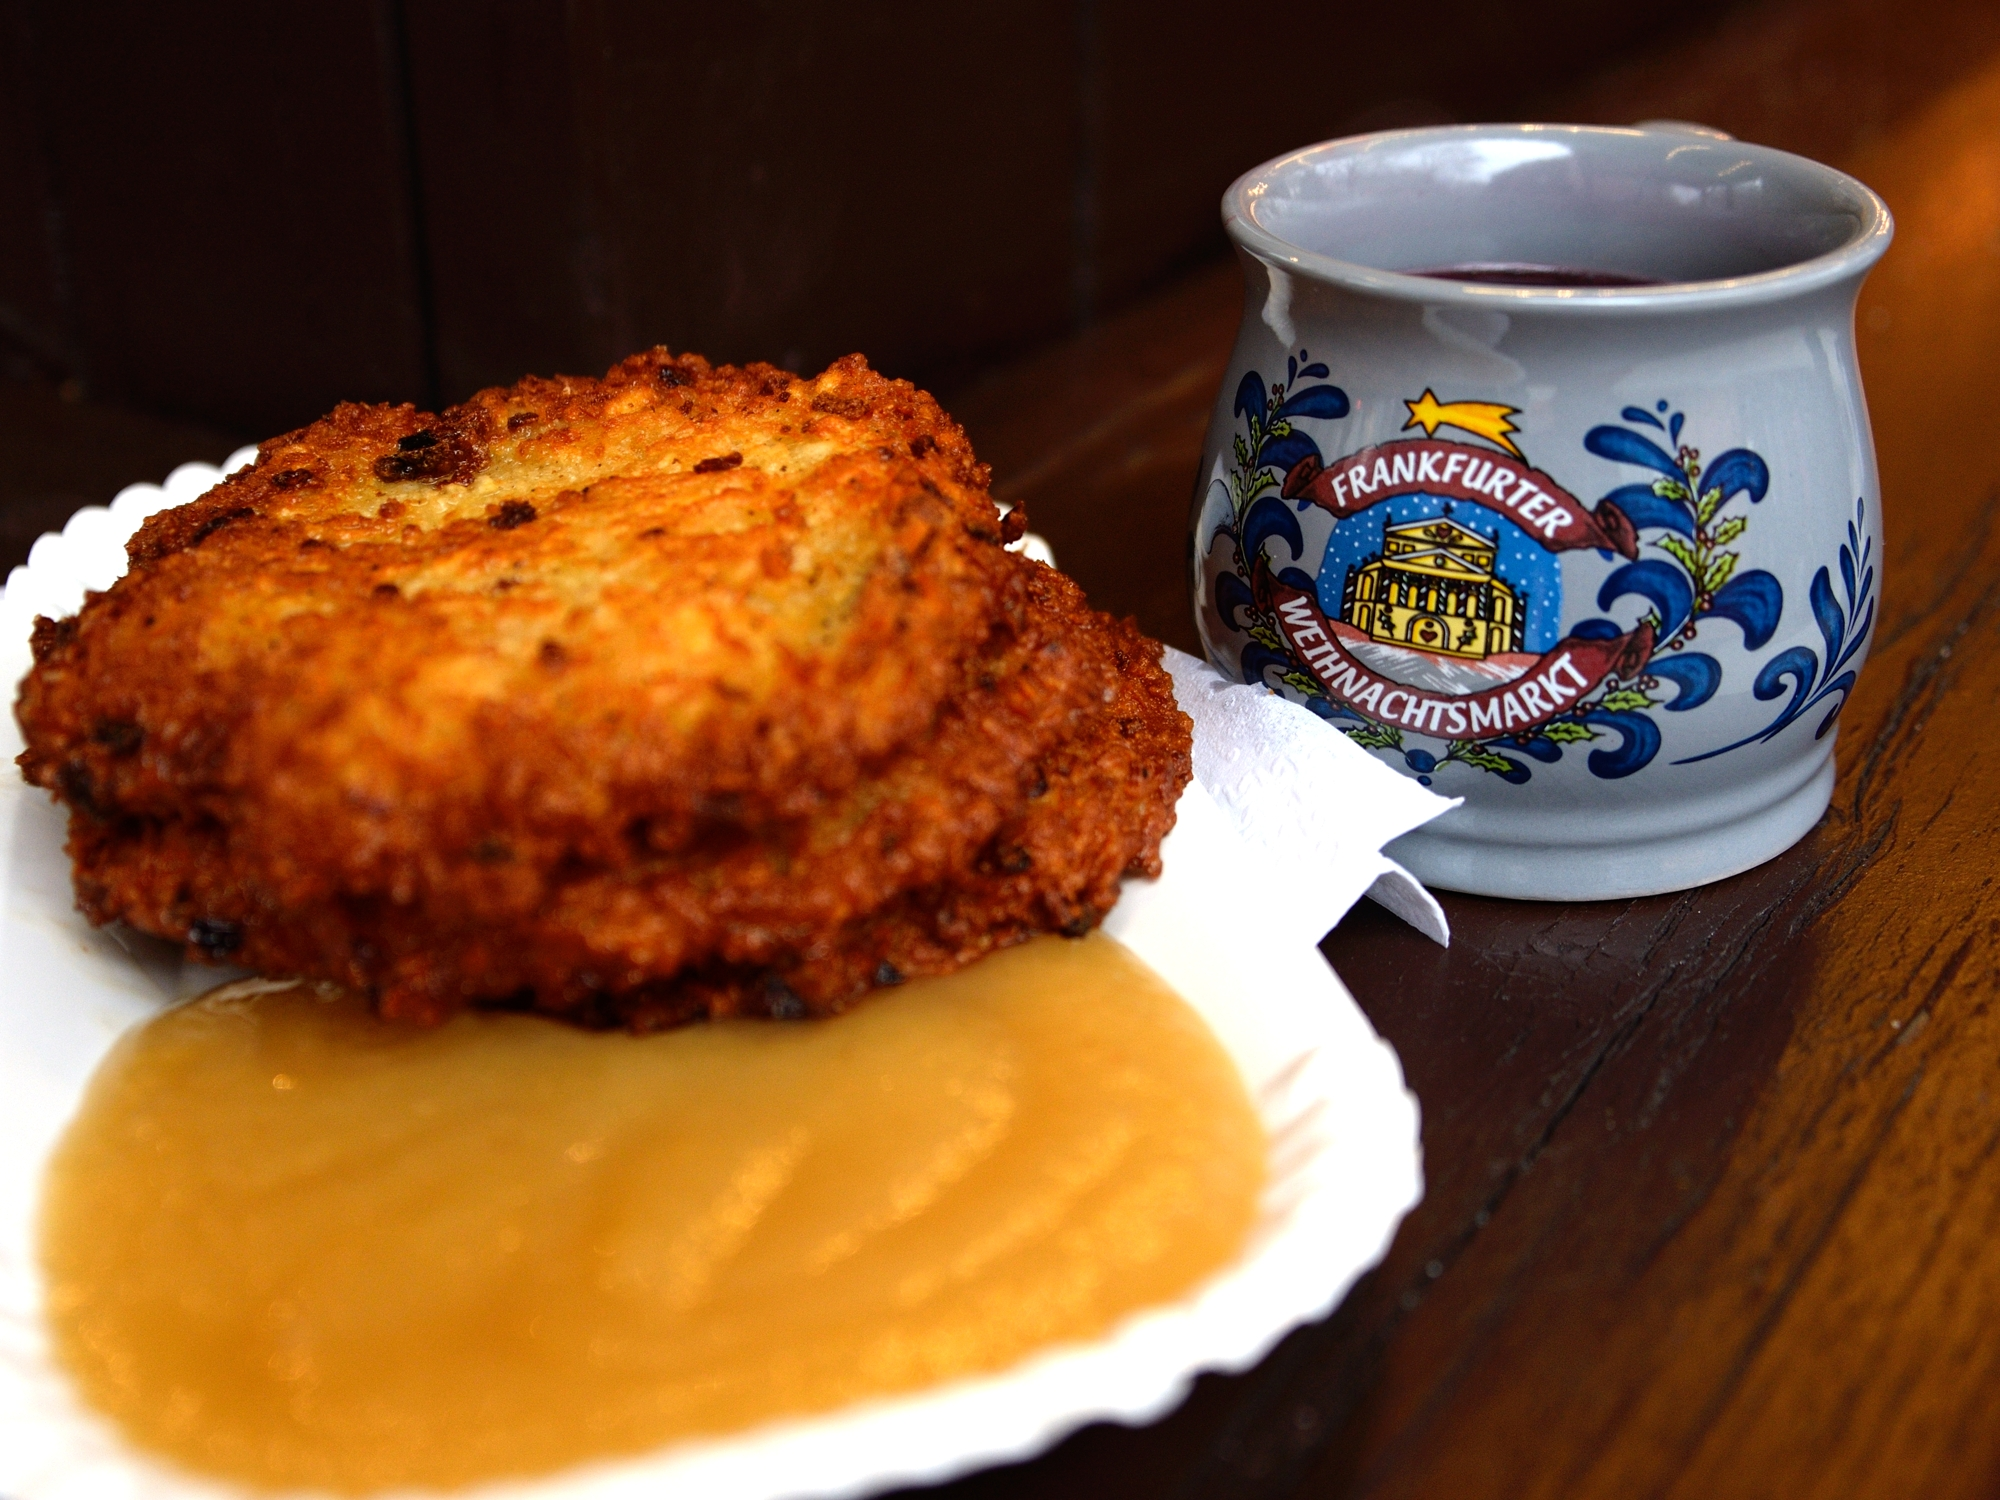 Potato cakes with apple sauce and a cup of Feuerzangenbowle